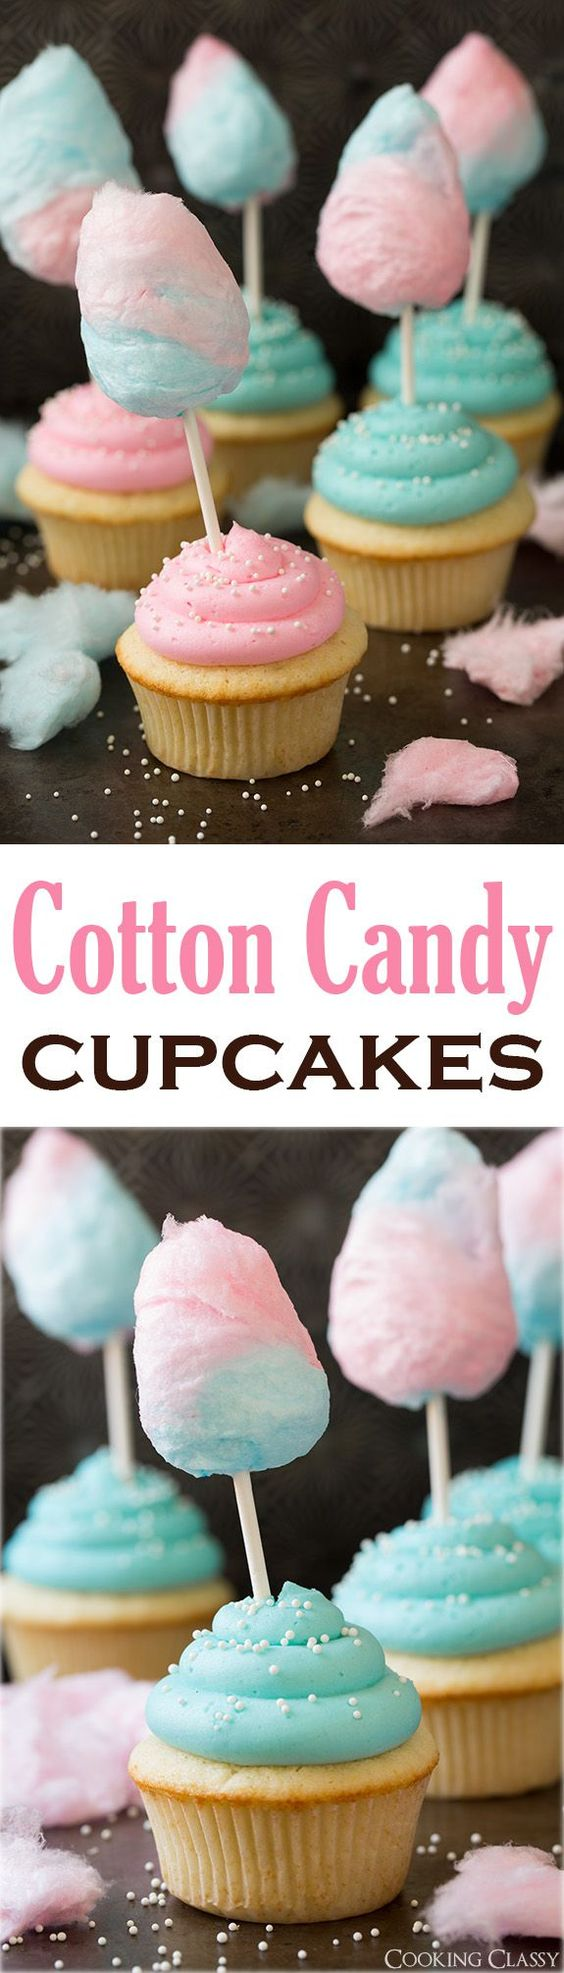 Cotton Candy Cupcakes - these are so fun! My kids loved them! The cupcakes are so soft and fluffy and the buttercream is melt-in-your-mouth amazing!